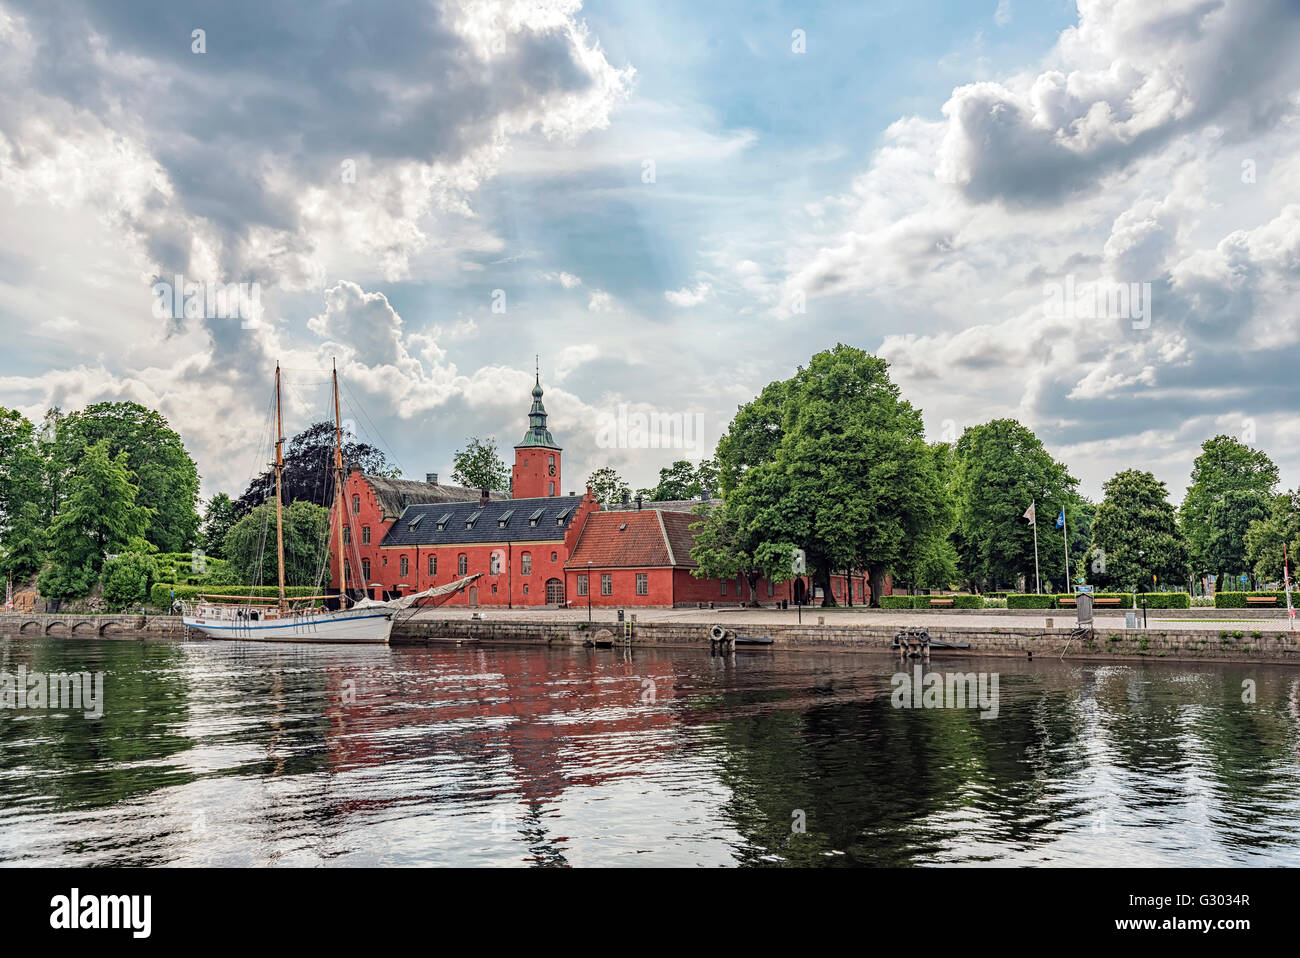 An image of Halmstad castle on the riverbank situated in the halland region of Sweden. Stock Photo